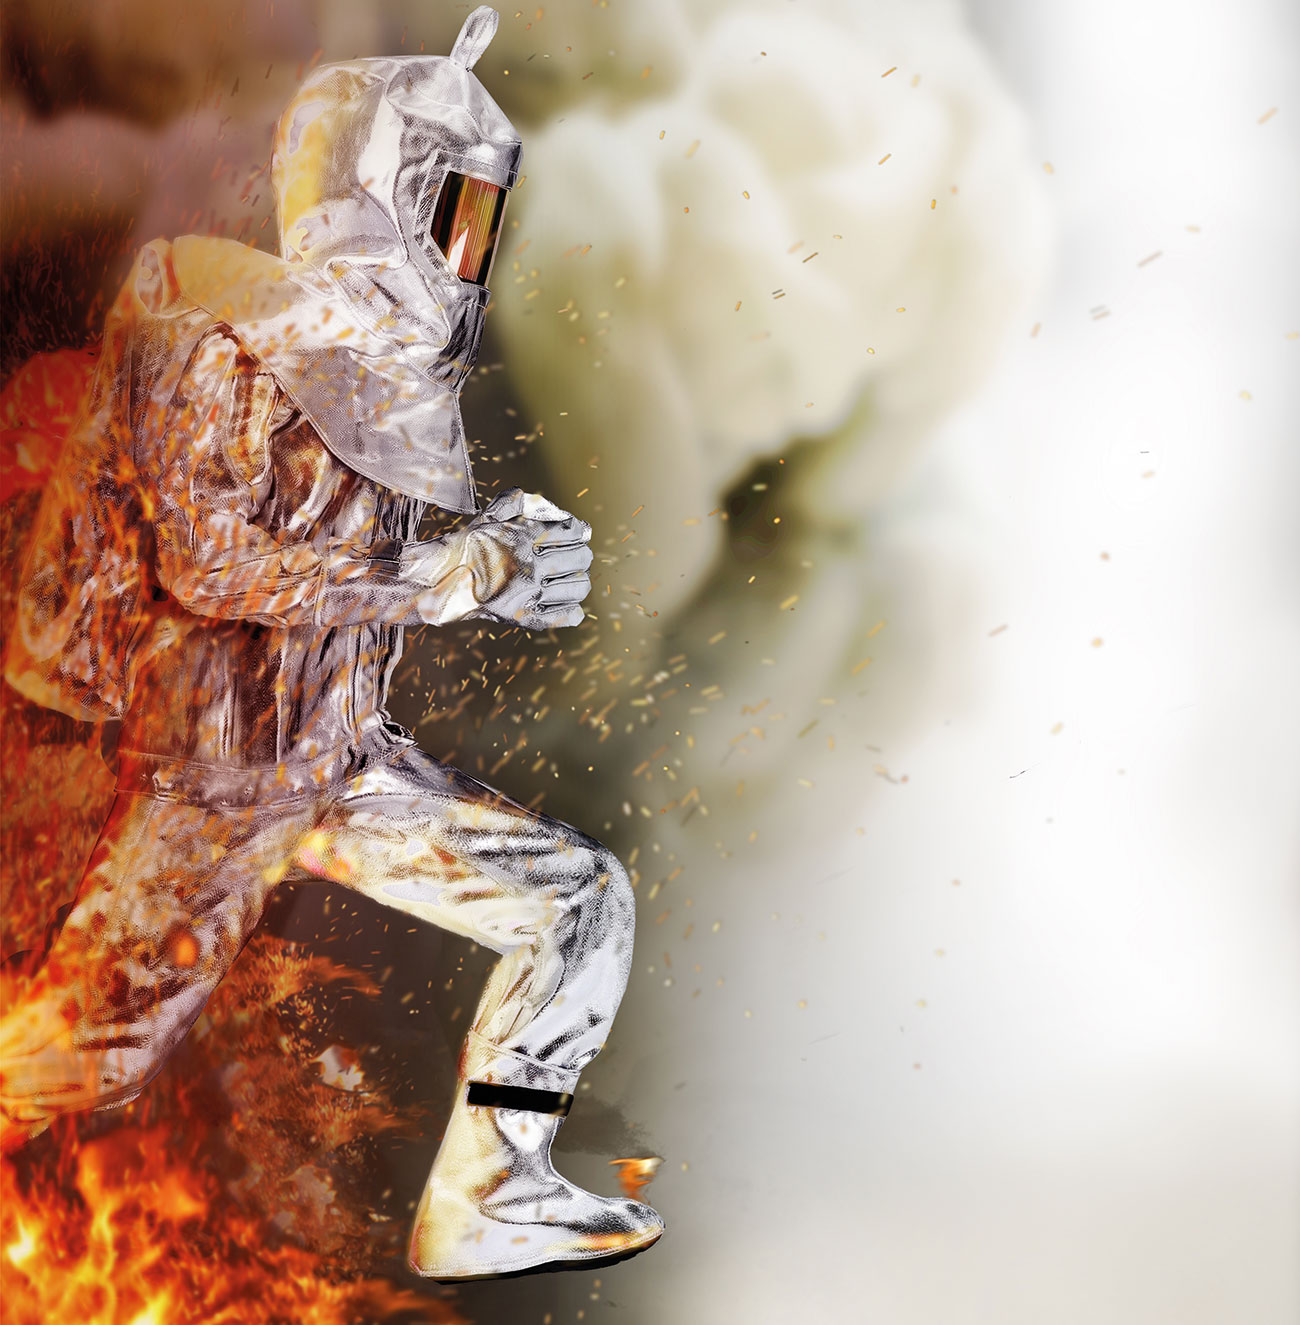 FIRESHIELD is a multi-layered fabric designed to offer high radiant heat protection without sacrificing mobility.